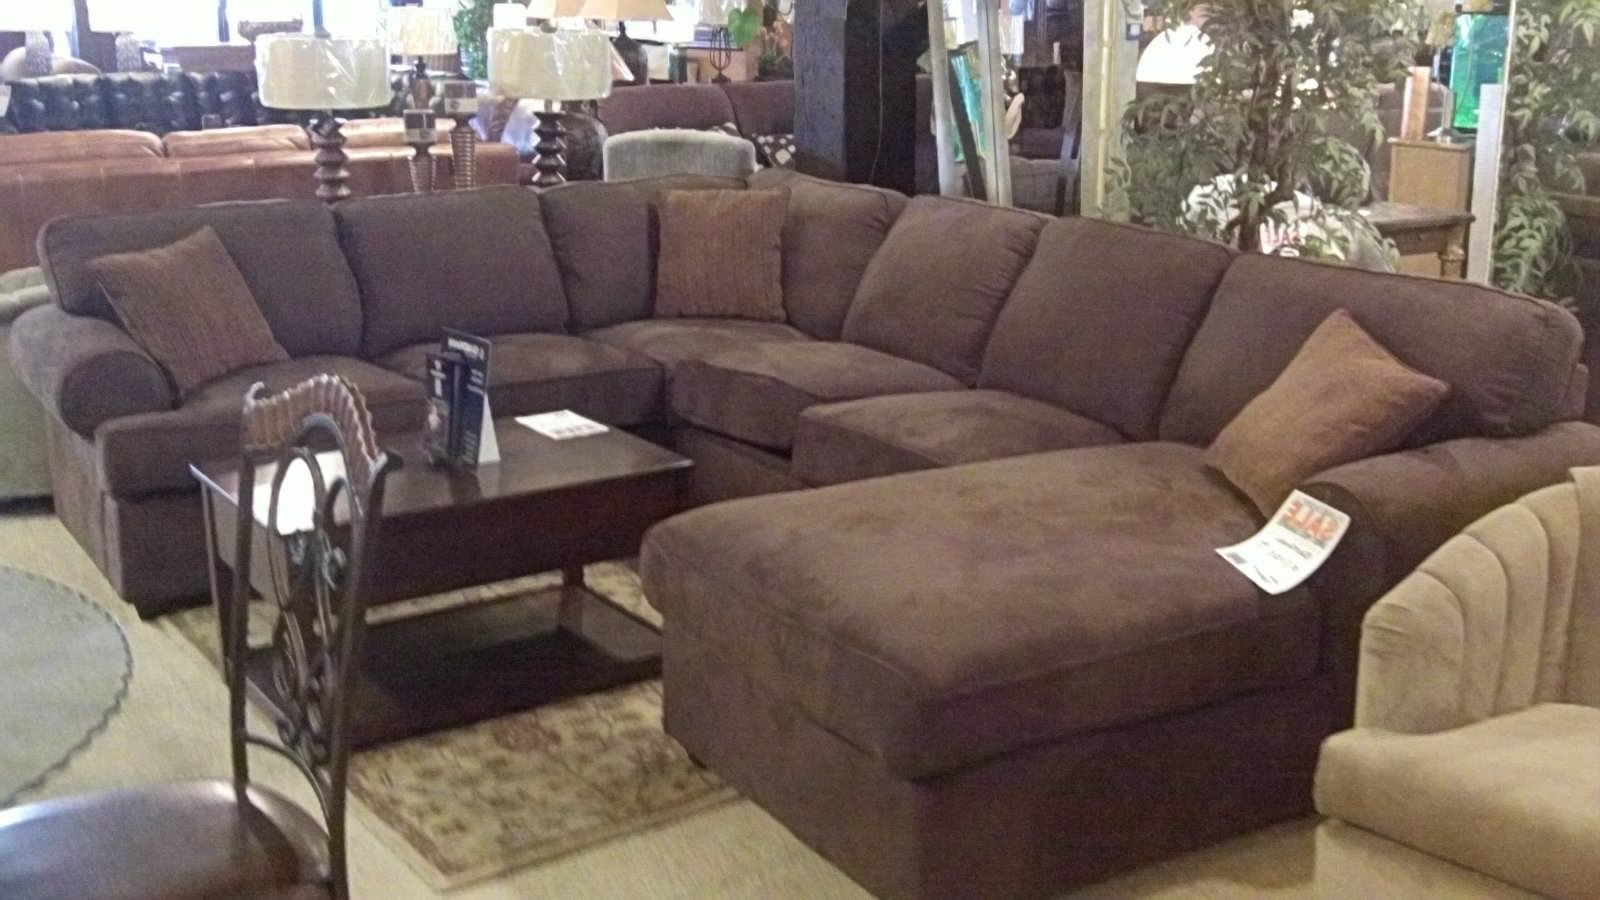 Sectional Sofas With Oversized Ottoman Throughout Favorite Sectional Sofa Design: Oversized Sectional Sofas Recliners Sale (View 9 of 20)